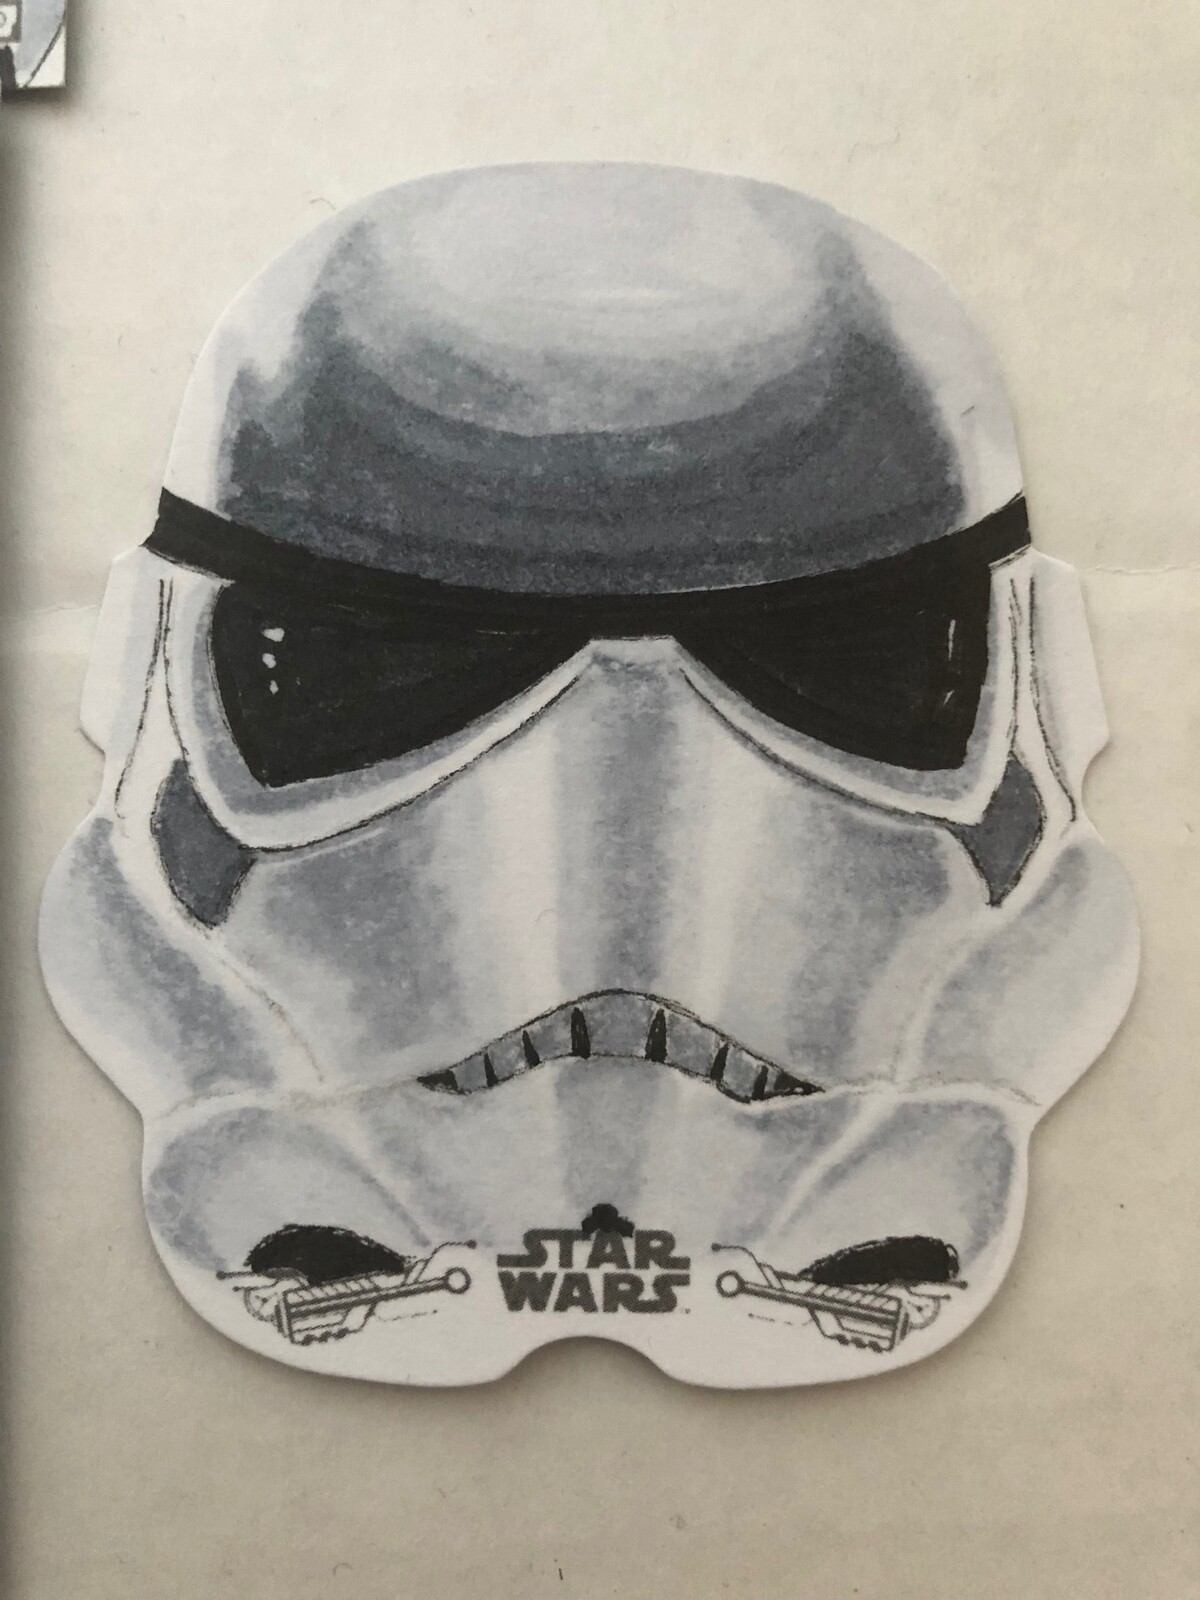 Art created for Topps trading cards Star Wars ANH B&W